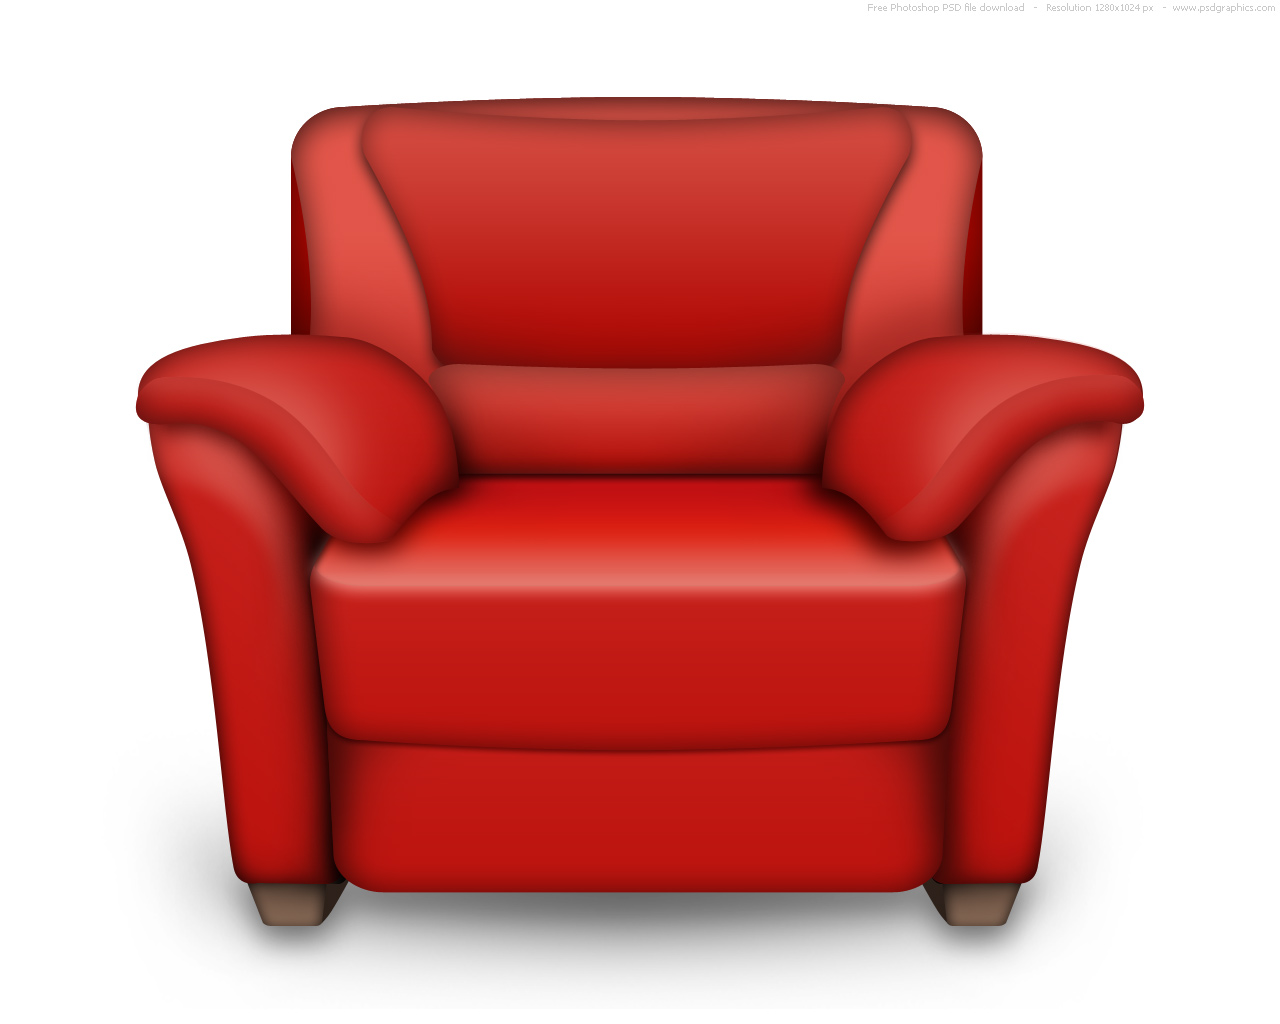 psd red and white leather armchair interior icon